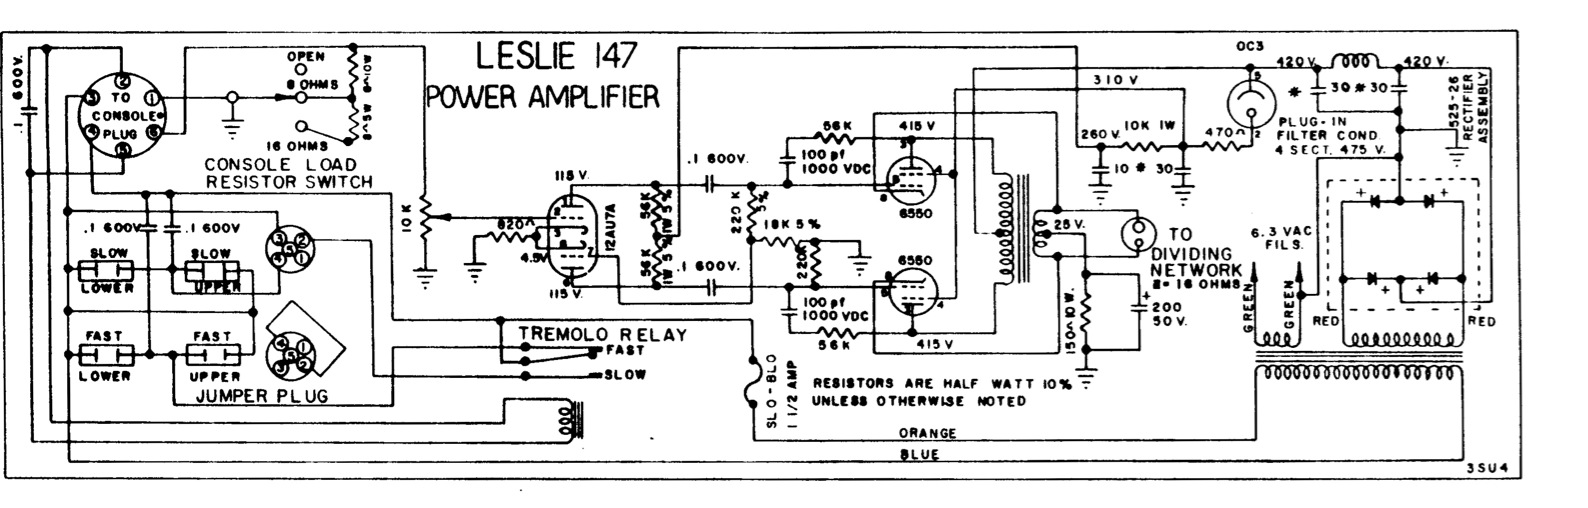 Techmeitz 5 Pin Crossover Relay Looking At The Physical Layout Of Circuit We Can See That Its Somewhat Similar To Order In Schematic Above Male 6 Connector Is Pictured